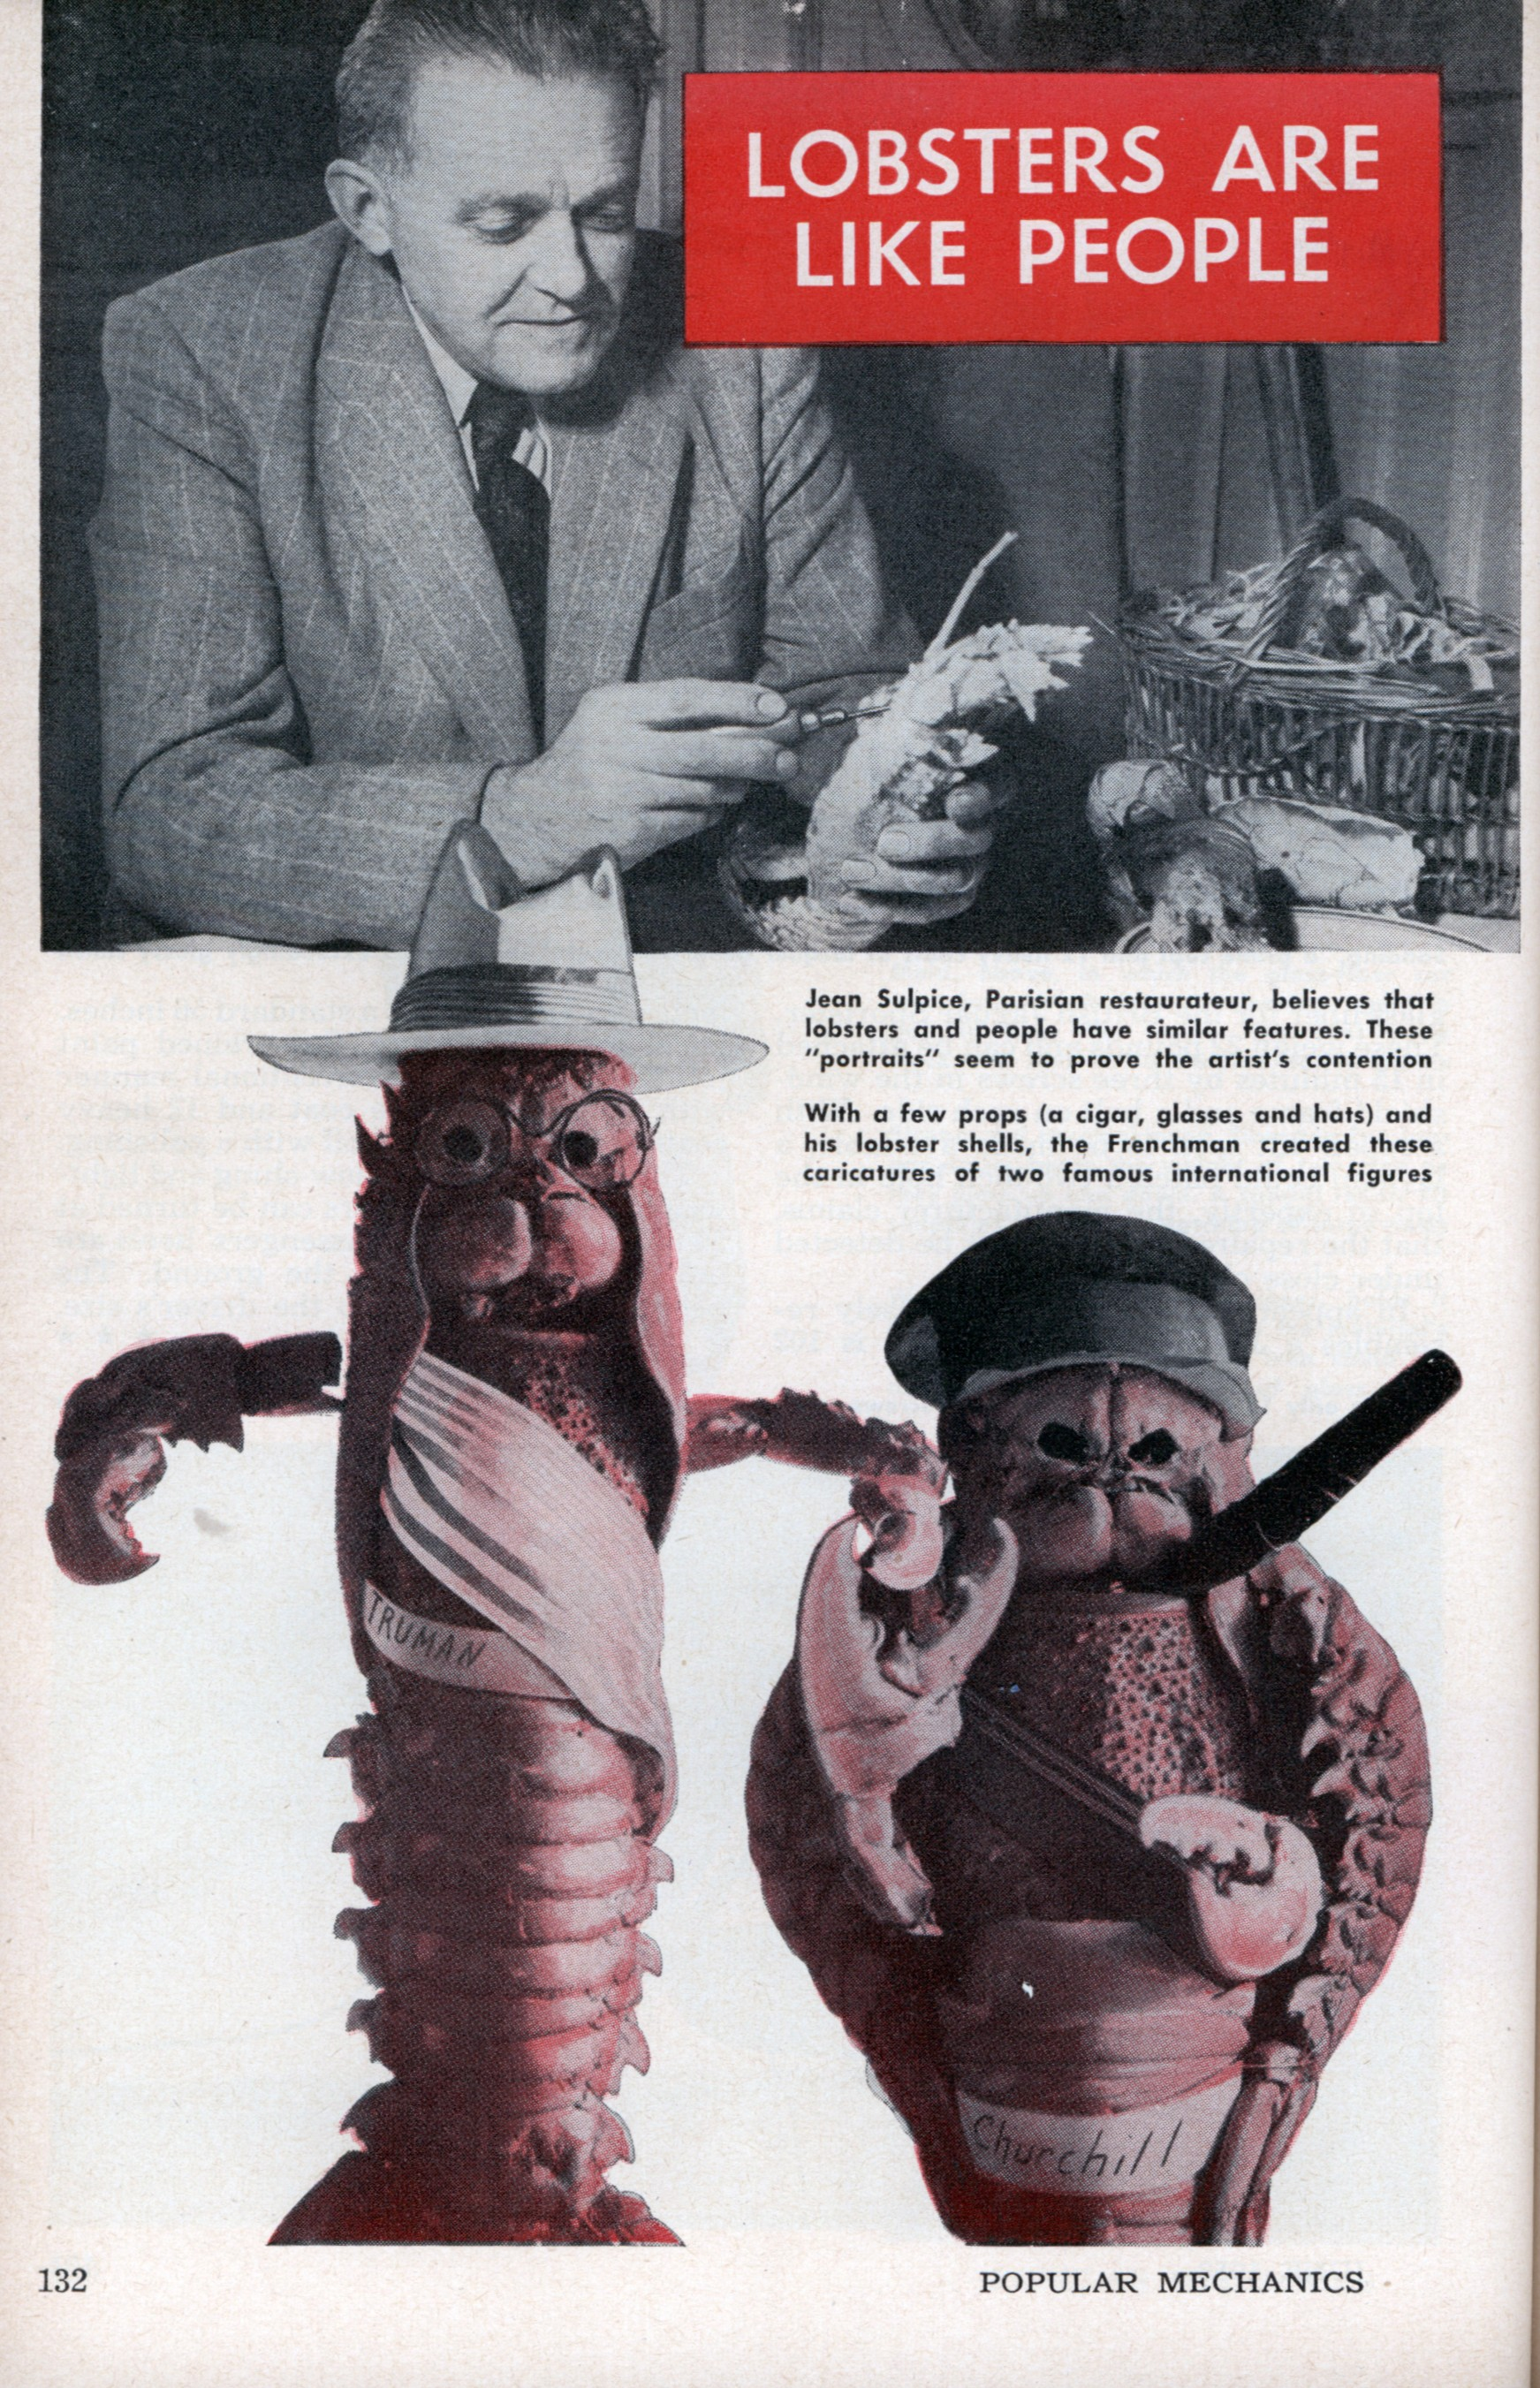 https://i1.wp.com/blog.modernmechanix.com/mags/PopularMechanics/6-1952/lobster_people/lobster_people_0.jpg